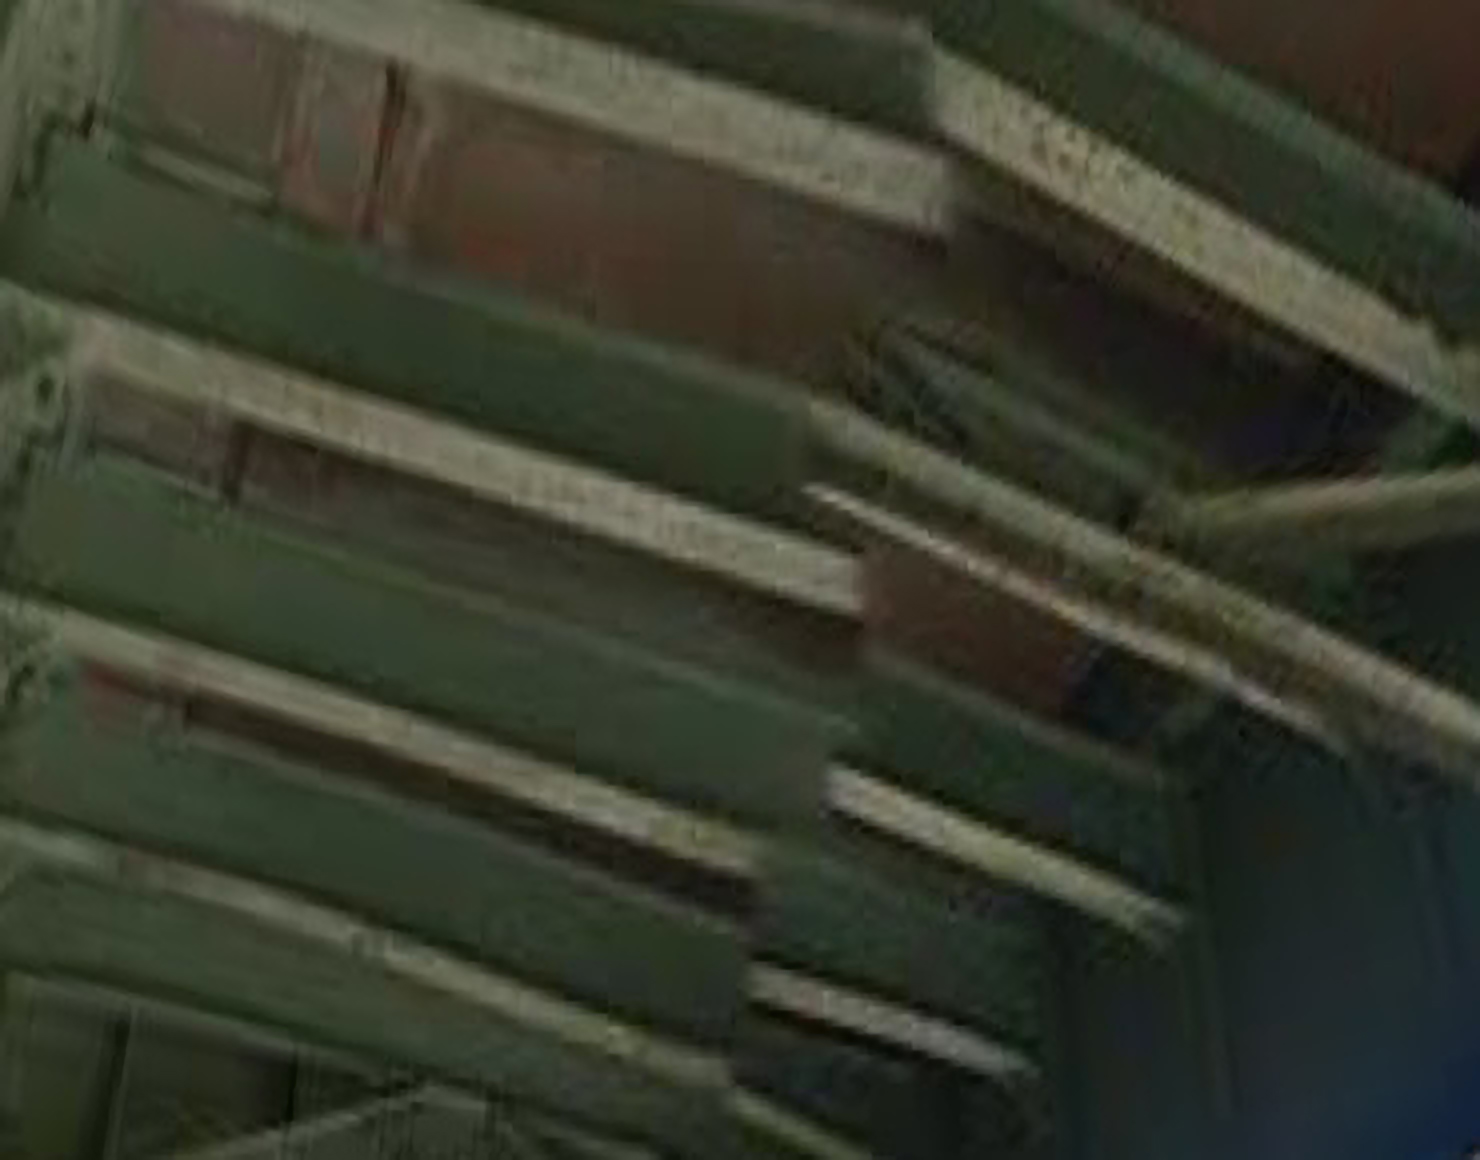 An abstract photograph of the underside of a bridge, consisting of cement held up by light-green girders. A Google Street View panorama artifact cuts the image into two.